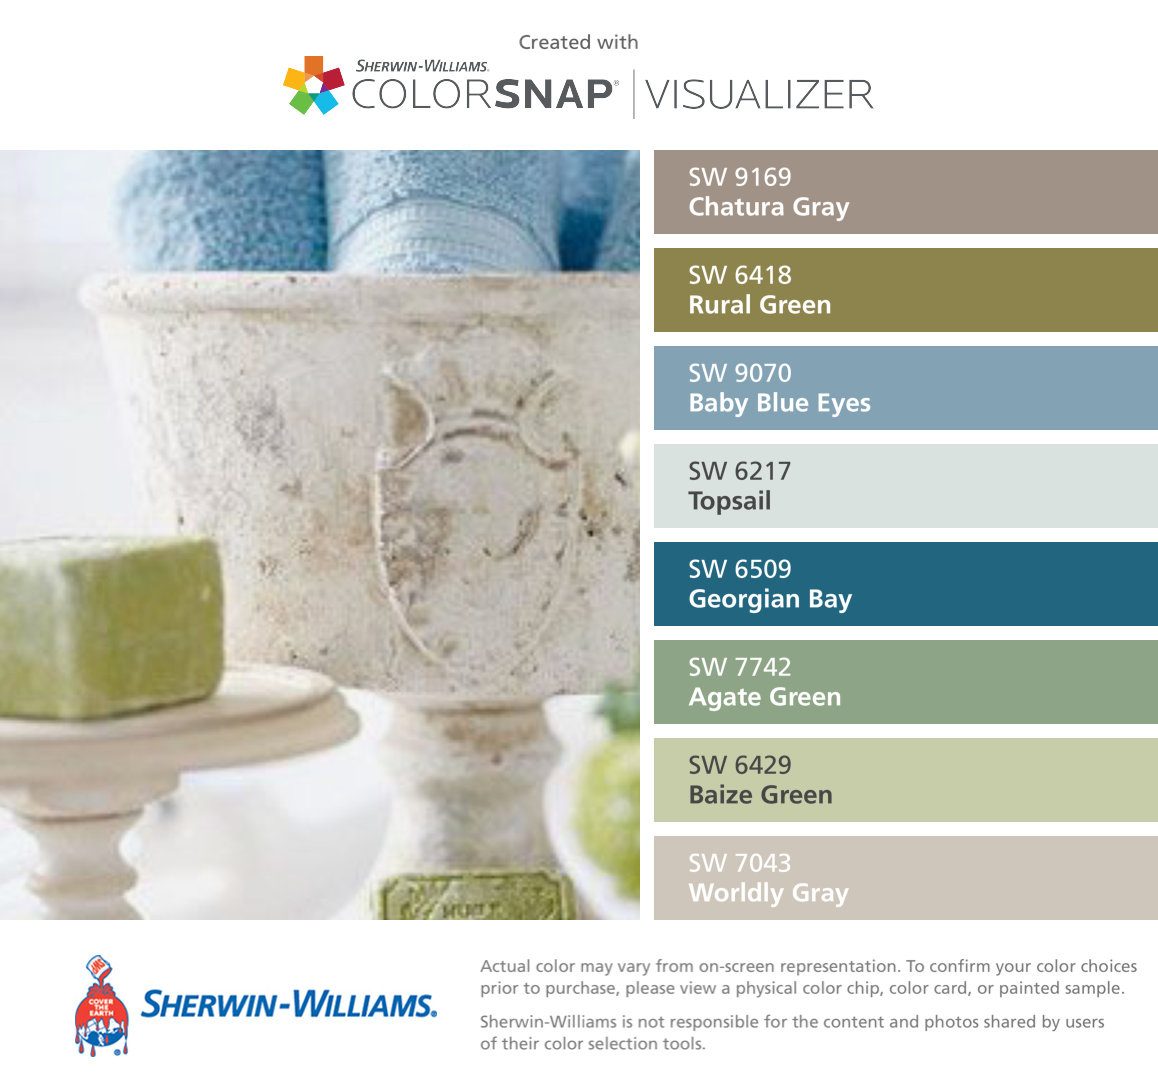 I Found These Colors With Colorsnap Visualizer For Iphone Room Paint Colors Sherwin Williams Bedroom Paint Colors Master Bedroom Paint Colors Sherwin Williams